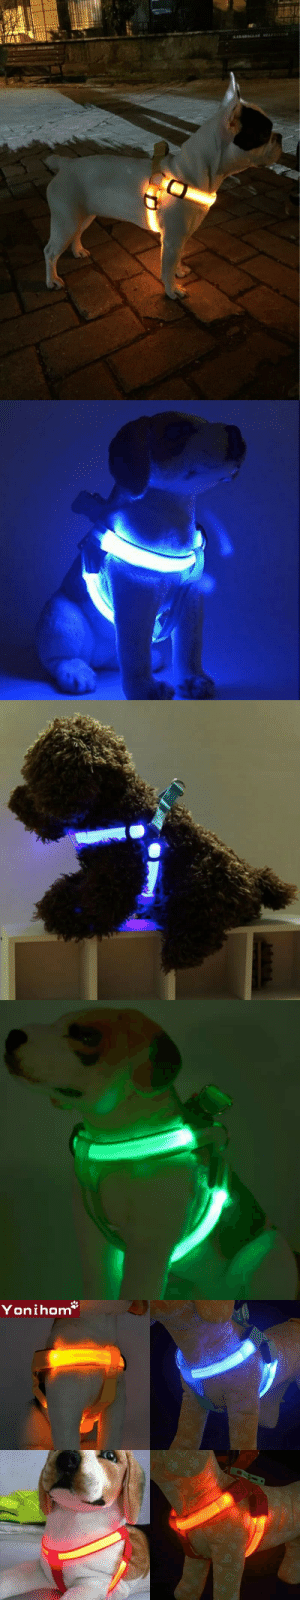 "awesomage:   The LED Harness enables you  to locate your dog at night so be easily seen from a great distance, keeping it safe from night traffic accidents. SPECIAL DISCOUNT OF 30% OFF PLUS FREE SHIPPING WITH COUPON CODE ""CUDDLING"" For every sale made, a rescue dog is fed!   https://www.doggiemon.com/products/led-harness : awesomage:   The LED Harness enables you  to locate your dog at night so be easily seen from a great distance, keeping it safe from night traffic accidents. SPECIAL DISCOUNT OF 30% OFF PLUS FREE SHIPPING WITH COUPON CODE ""CUDDLING"" For every sale made, a rescue dog is fed!   https://www.doggiemon.com/products/led-harness"